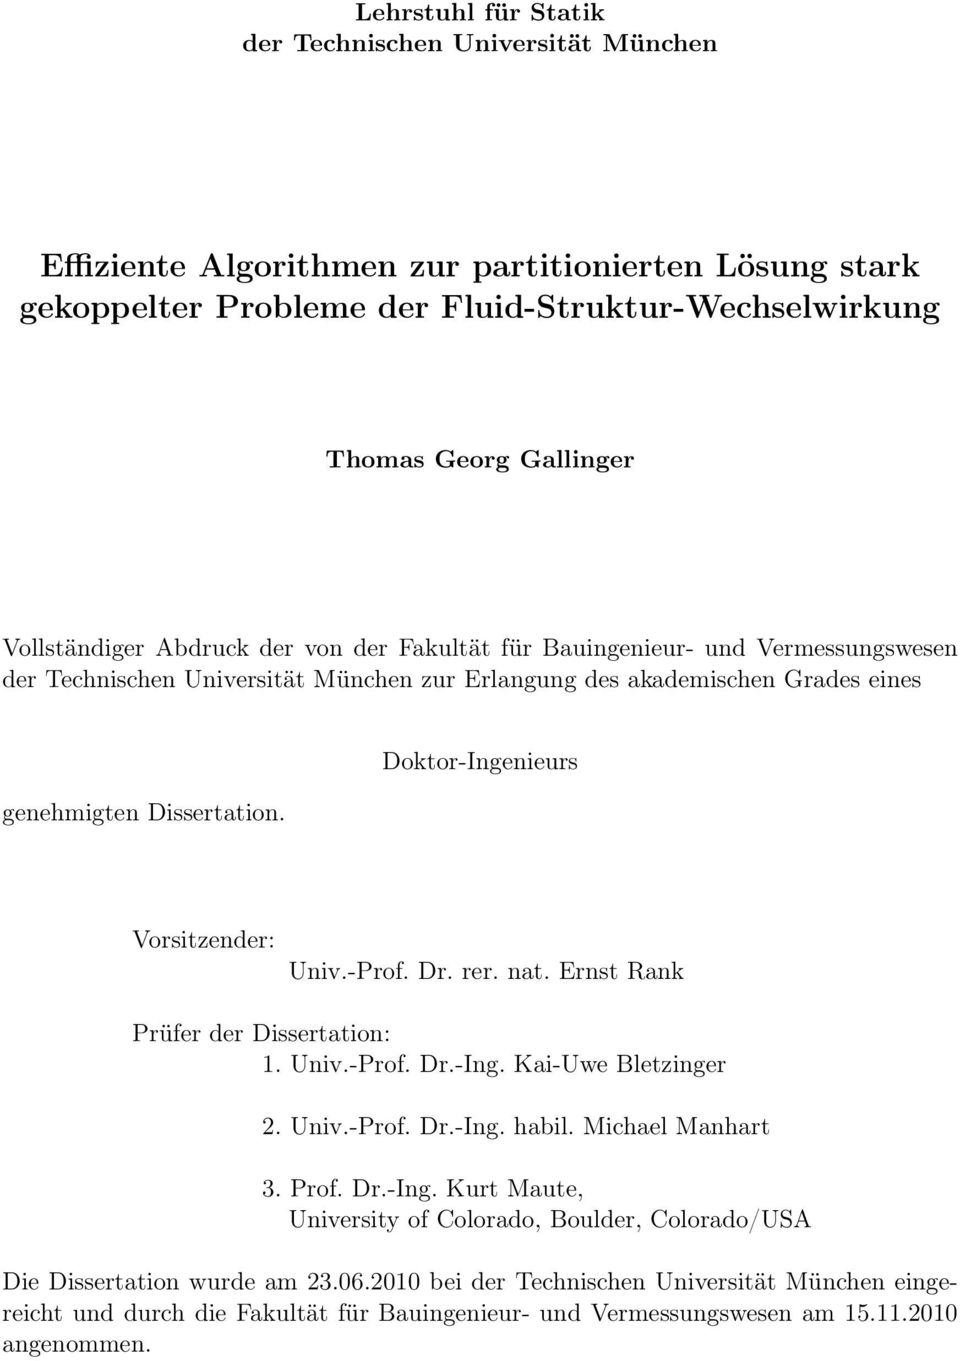 Doktor-Ingenieurs Vorsitzender: Univ.-Prof. Dr. rer. nat. Ernst Rank Prüfer der Dissertation: 1. Univ.-Prof. Dr.-Ing. Kai-Uwe Bletzinger 2. Univ.-Prof. Dr.-Ing. habil. Michael Manhart 3. Prof. Dr.-Ing. Kurt Maute, University of Colorado, Boulder, Colorado/USA Die Dissertation wurde am 23.